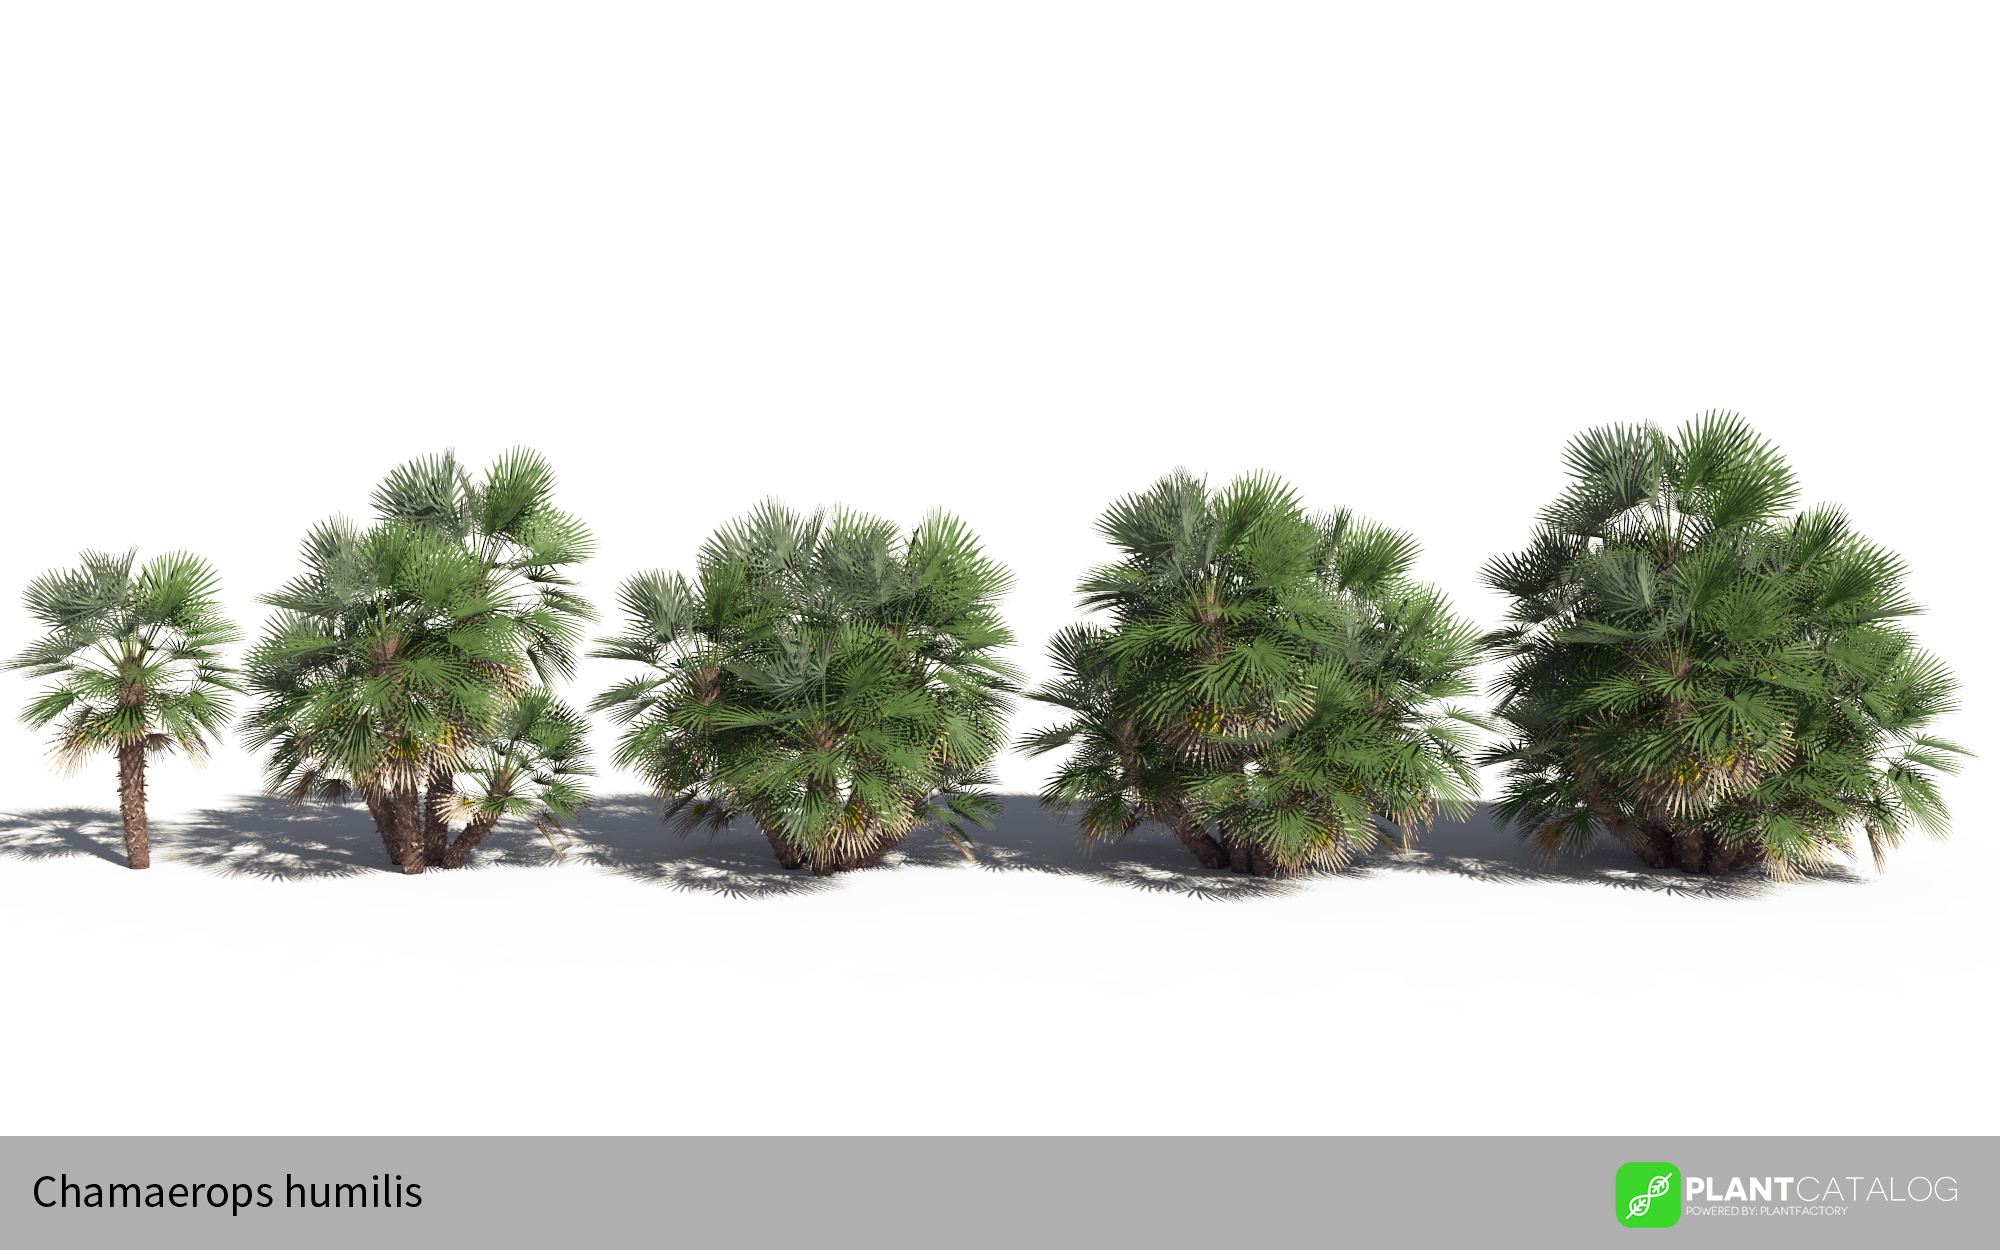 3D model of the Mediterranean fan palm - Chamaerops humilis - from the PlantCatalog, rendered in VUE